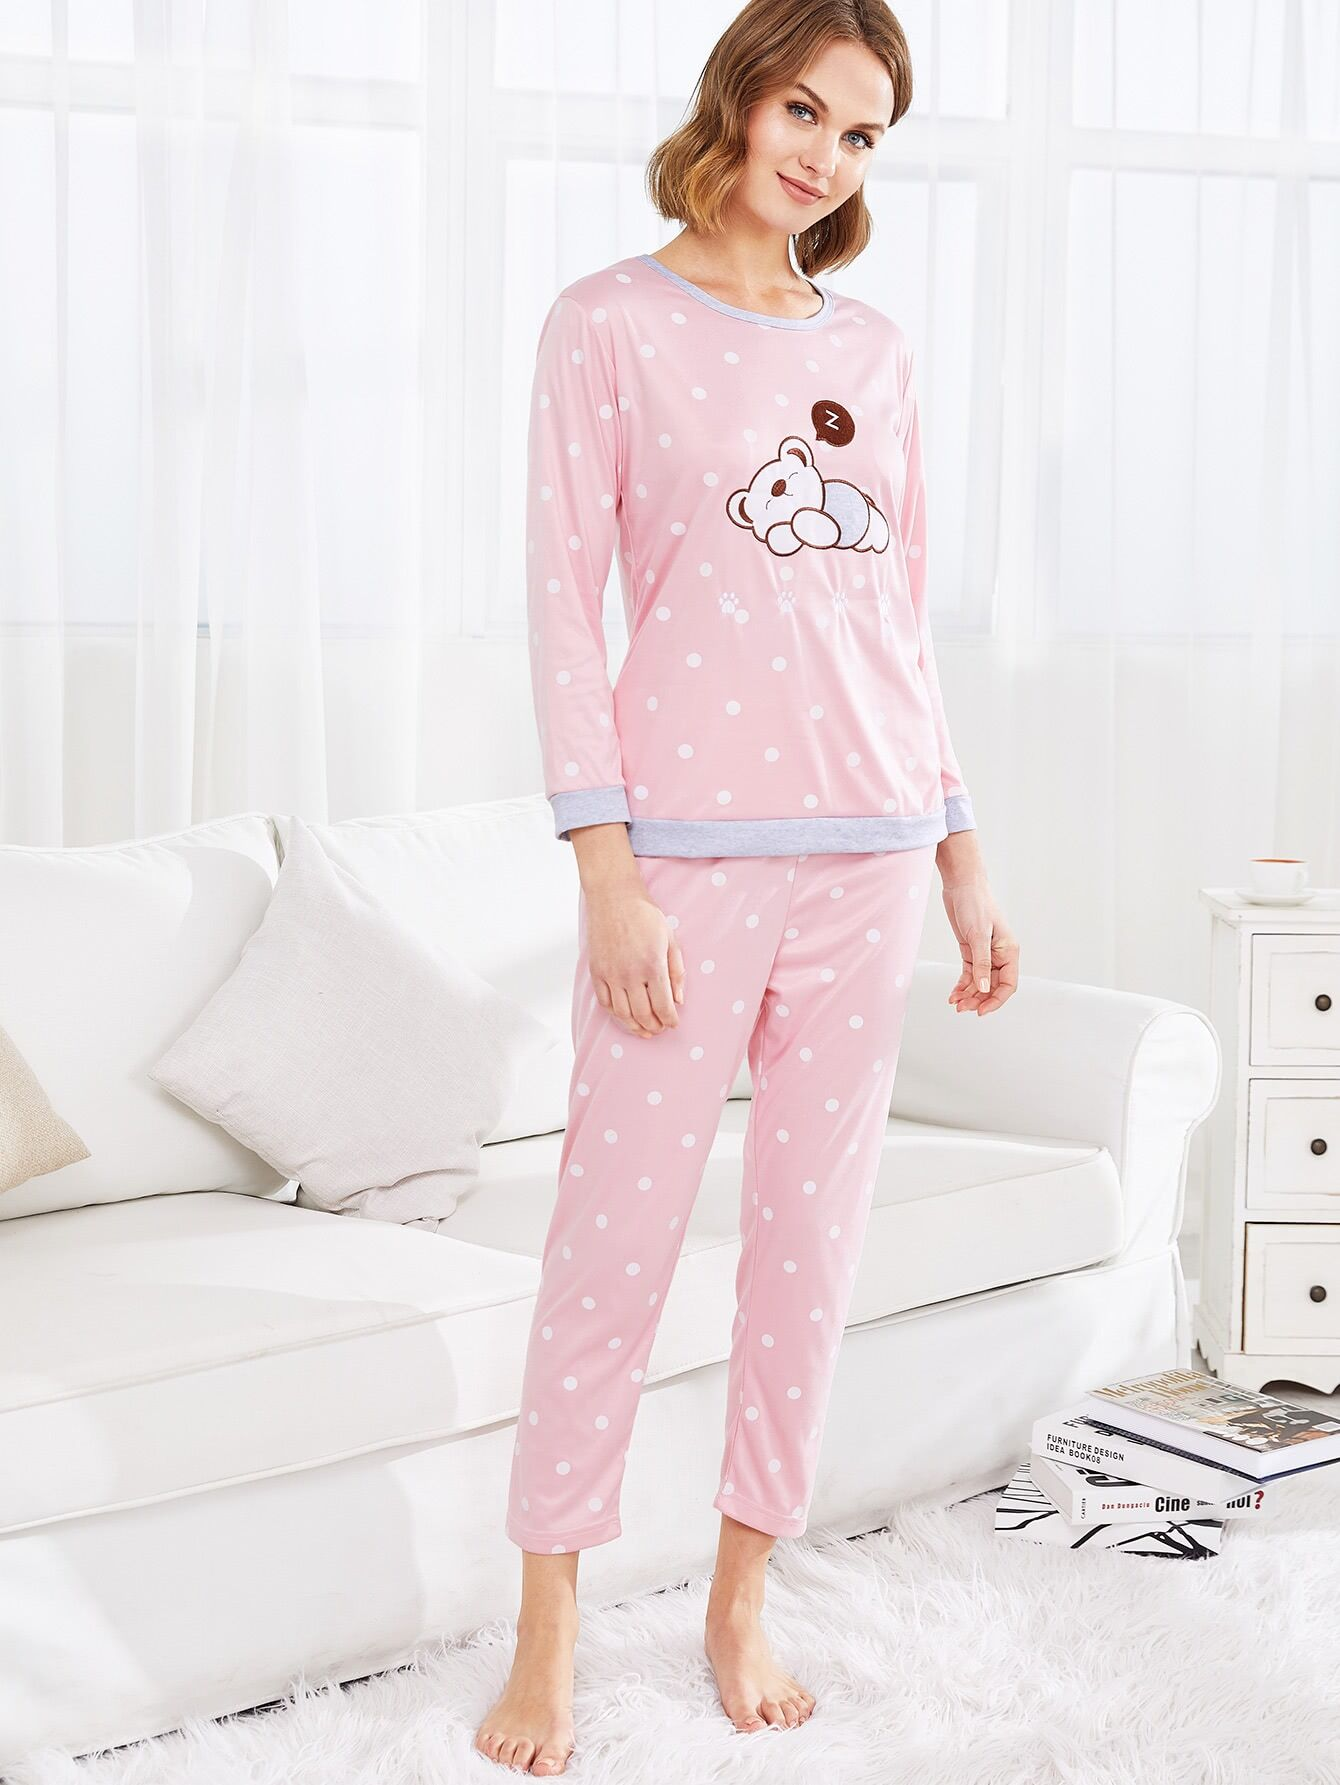 Bear Embroidery Polka Dot PJ Set